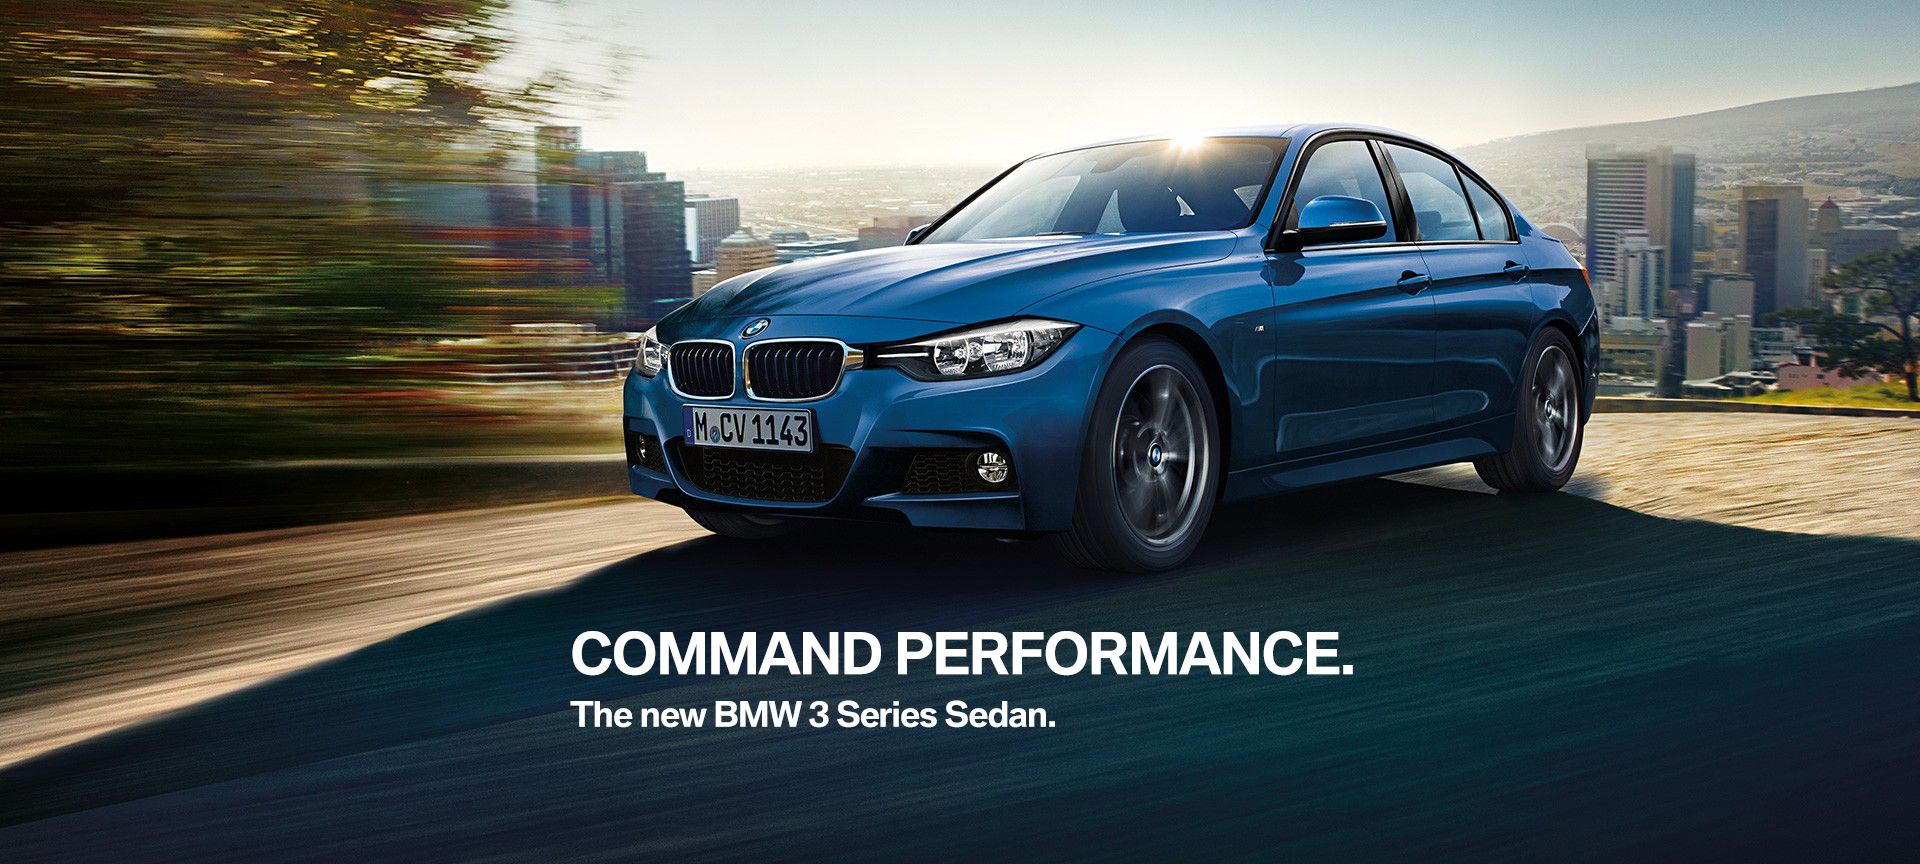 Own the road. 2018 BMW 330i xDrive Sedan.